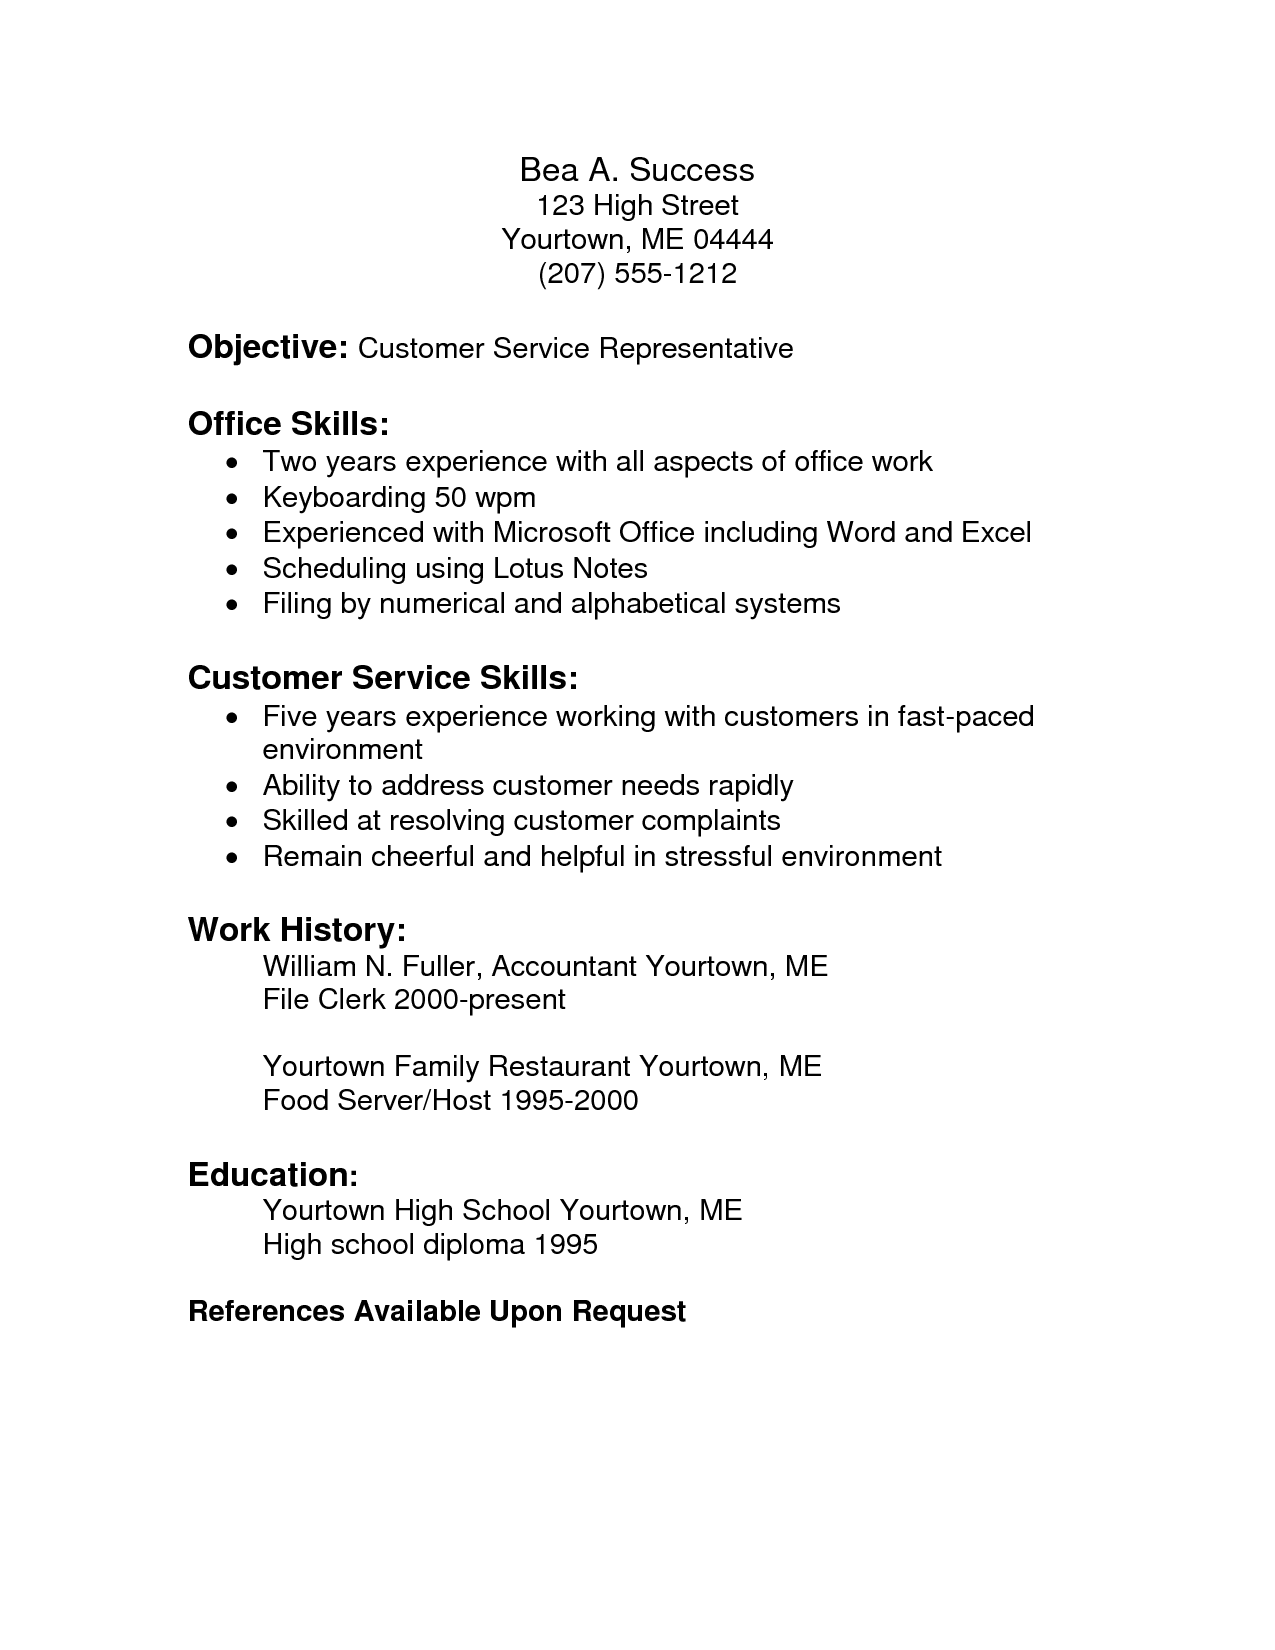 customer service skills for a resume